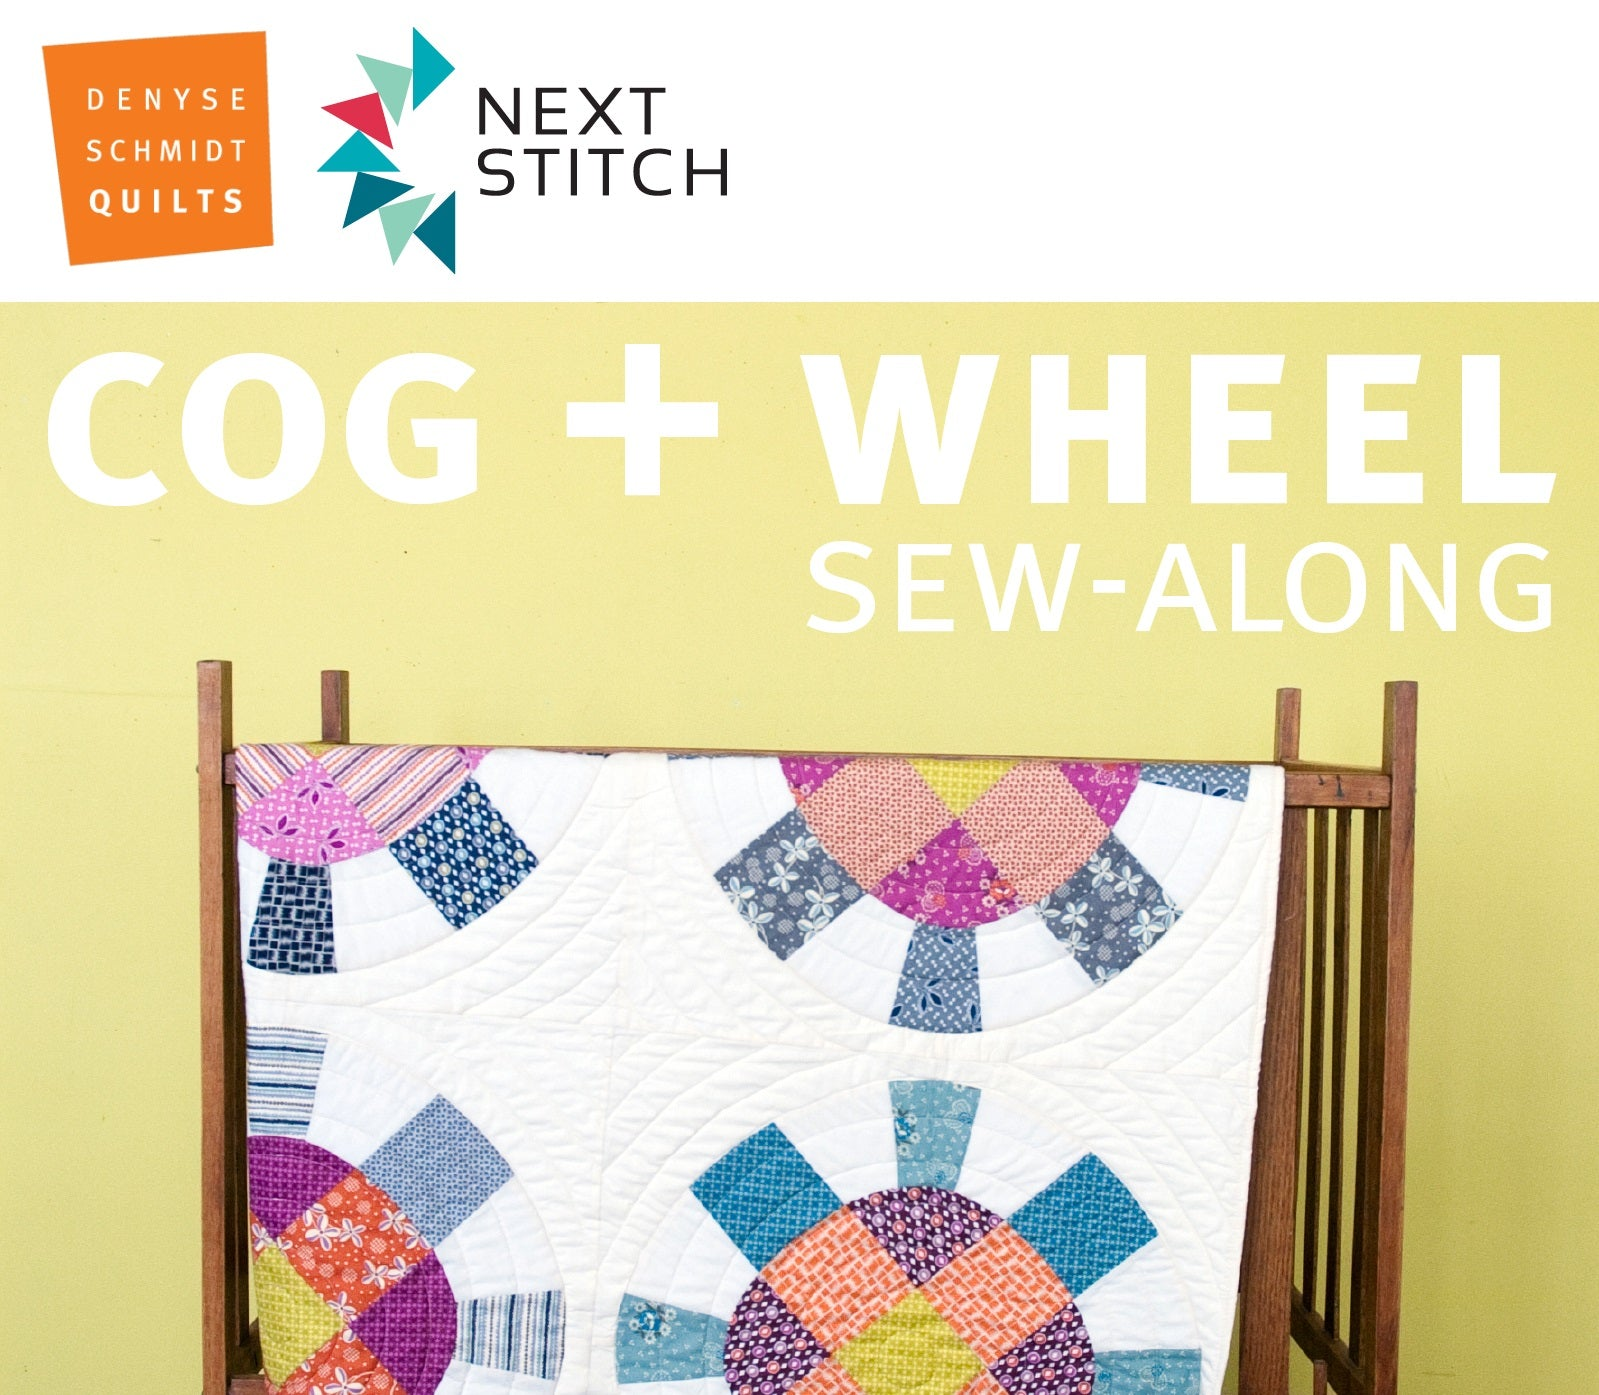 Announcing the Cog and Wheel Sew-along 2019